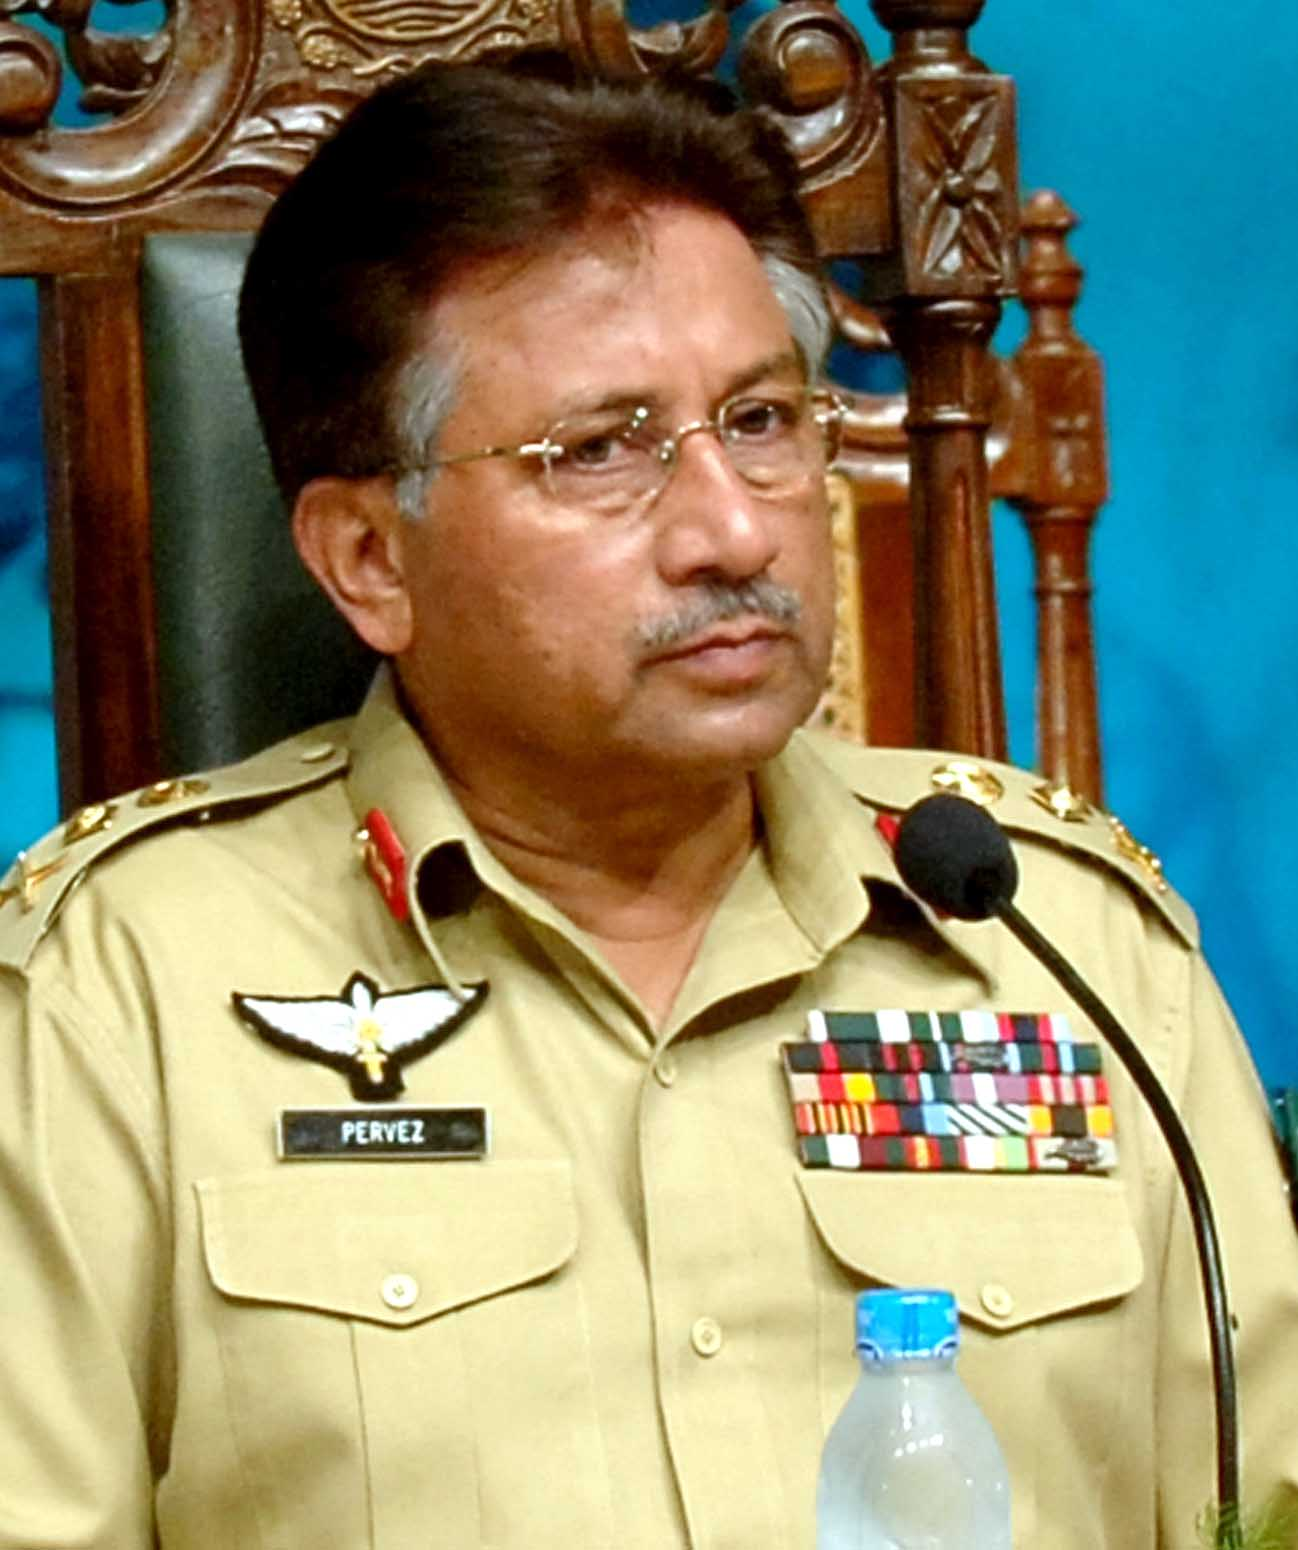 Free Pervez Musharraf All Free Images For Download